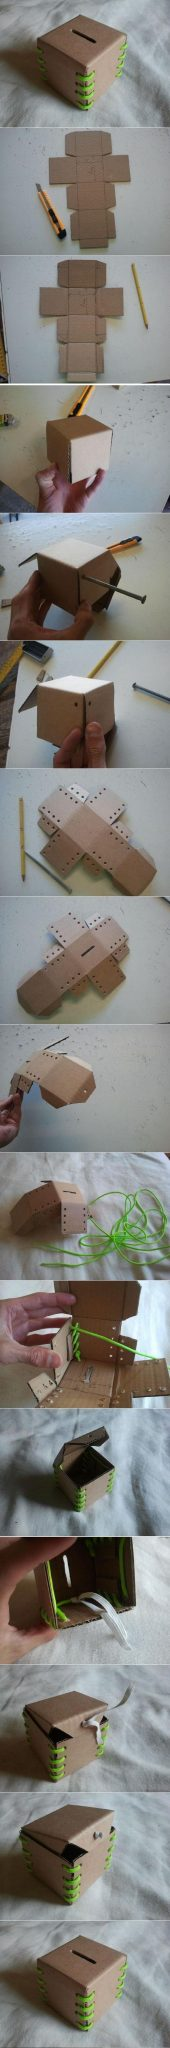 DIY-Cardboard-Piggy-Bank